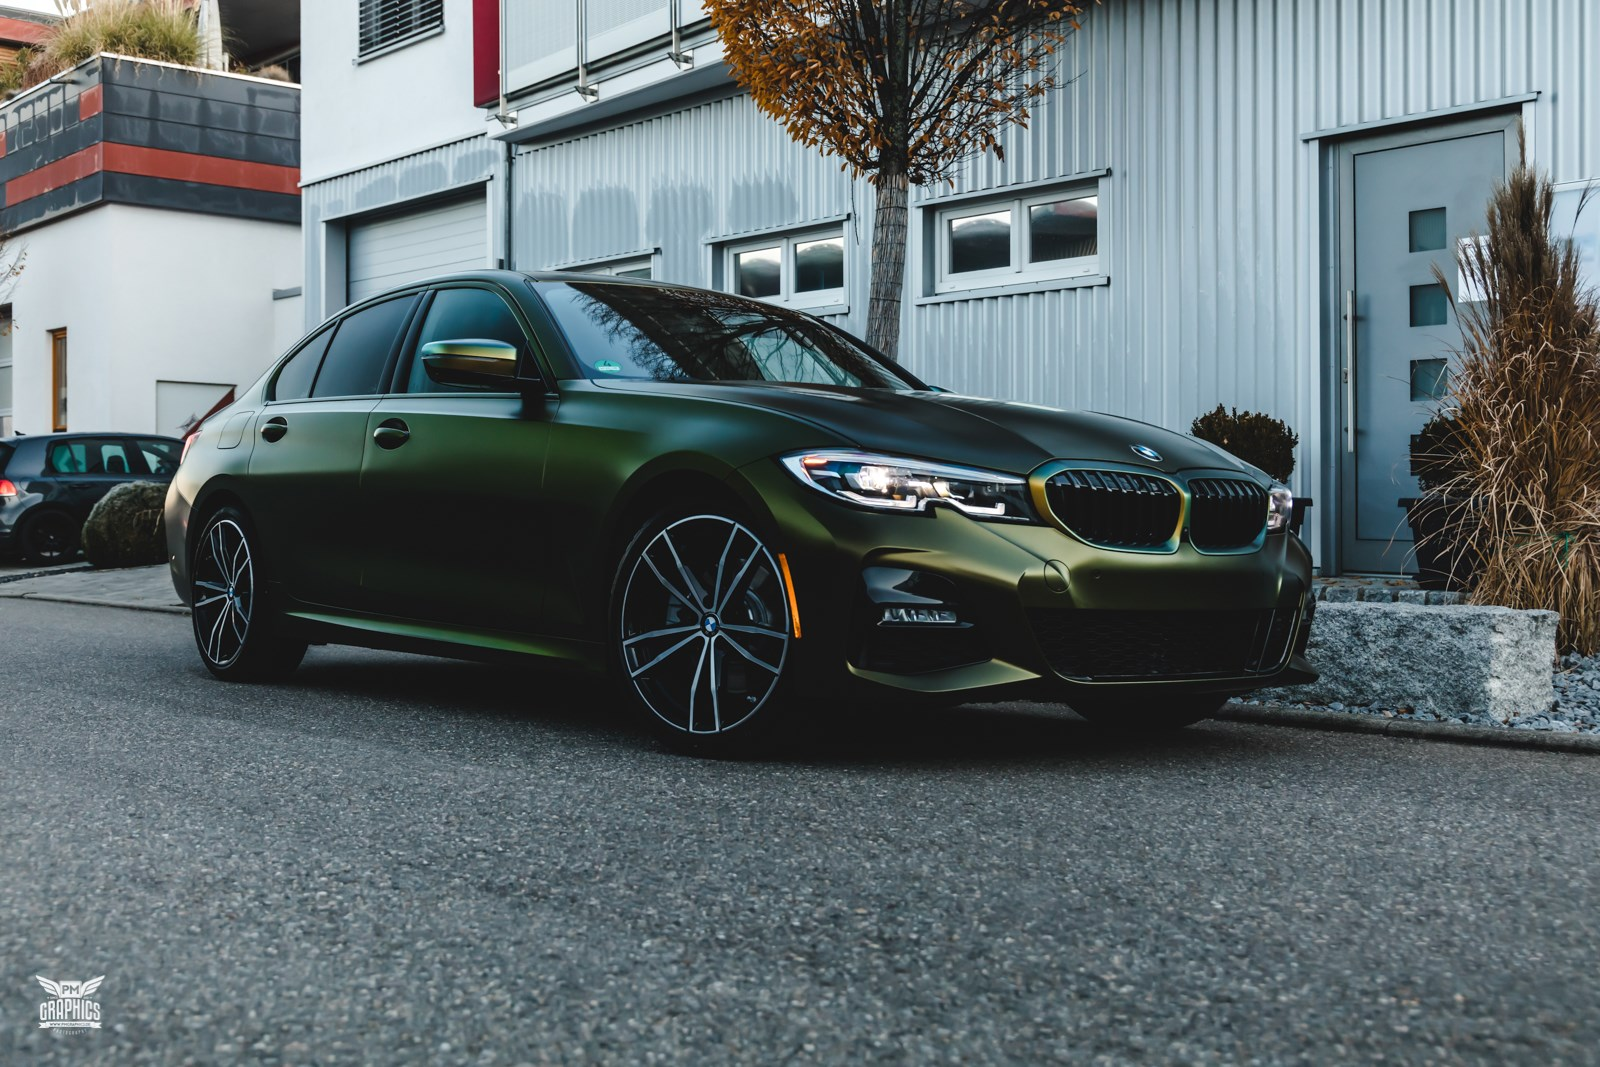 Check Out This Hope Green Wrapped G20 Bmw 3 Series